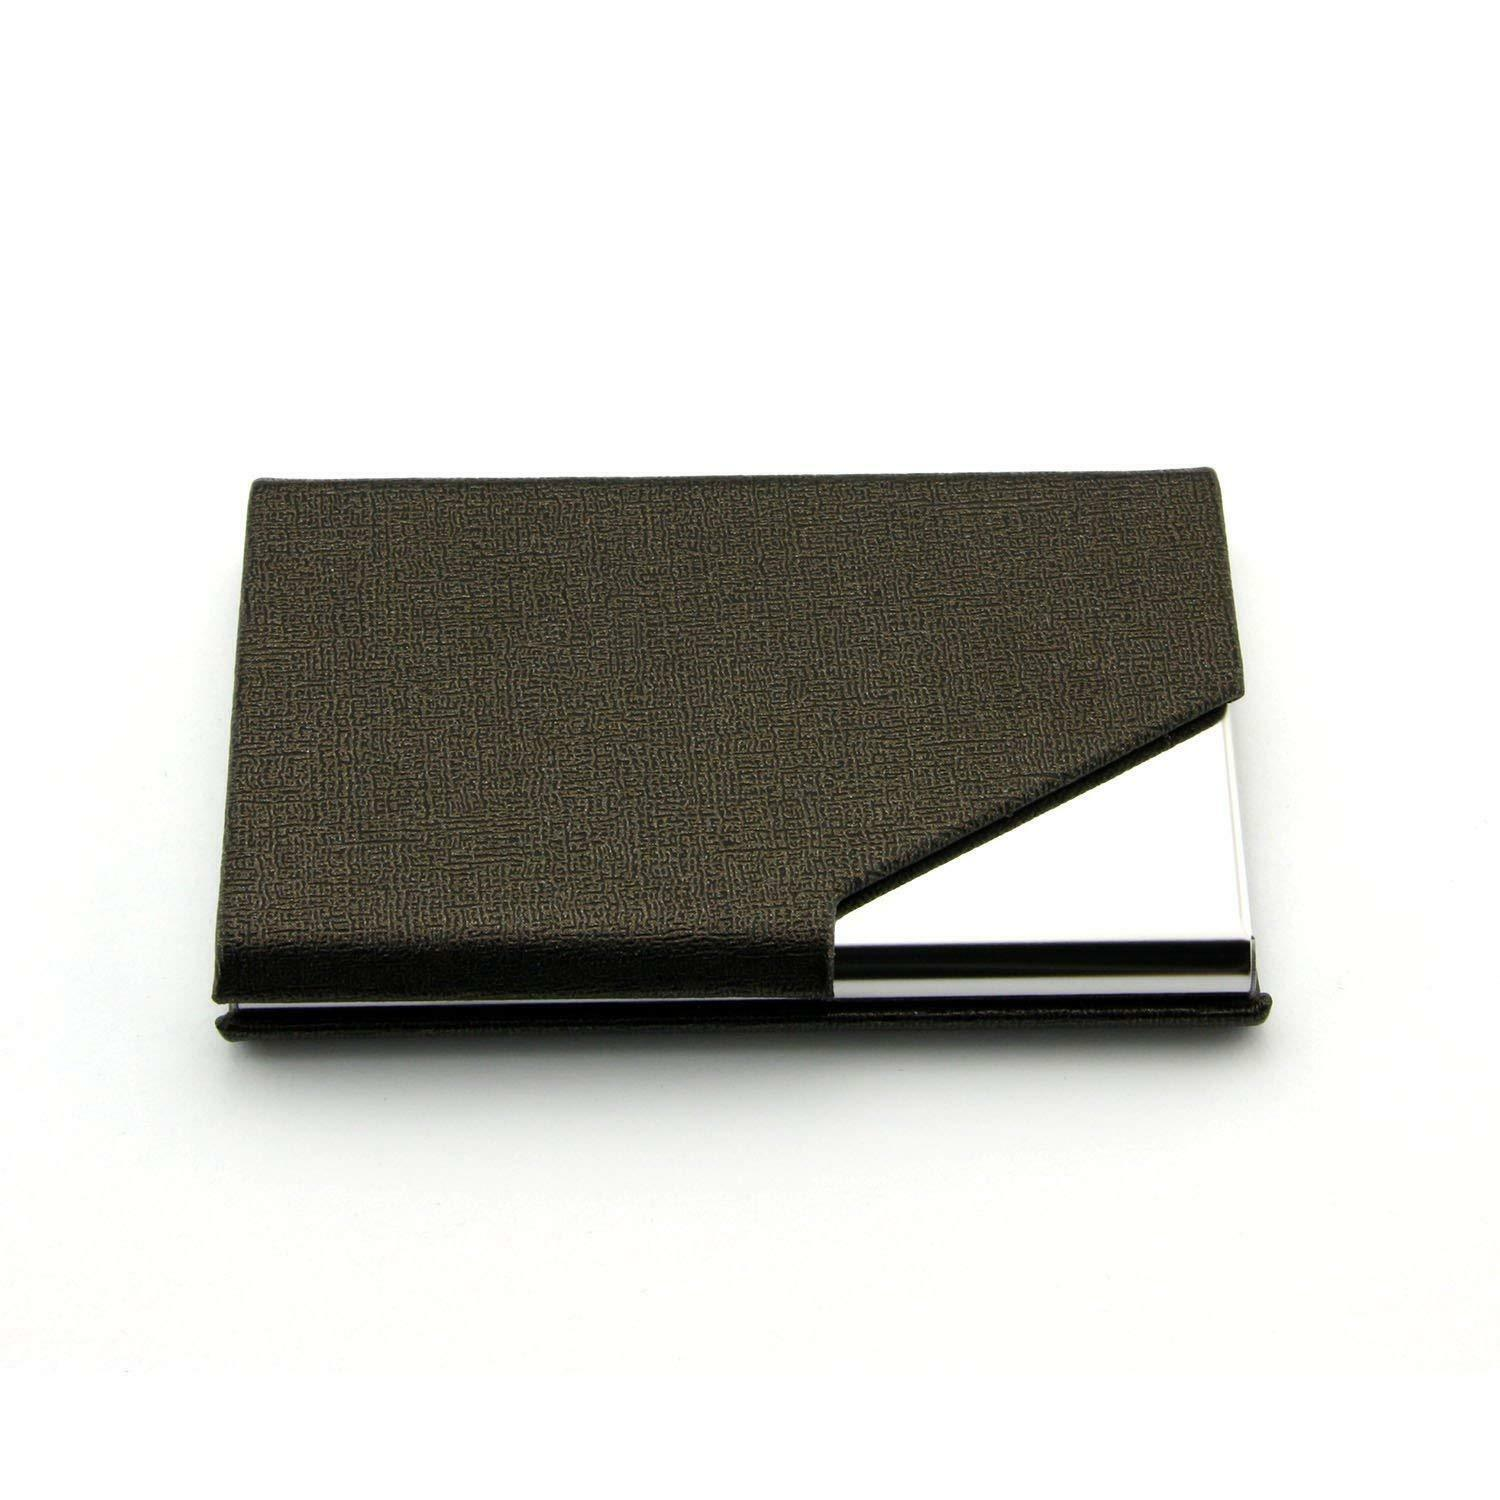 2Pcs Stainless Pocket Business Card Holder Case ID Credit Name Box Steel Wallet Clothing, Shoes & Accessories